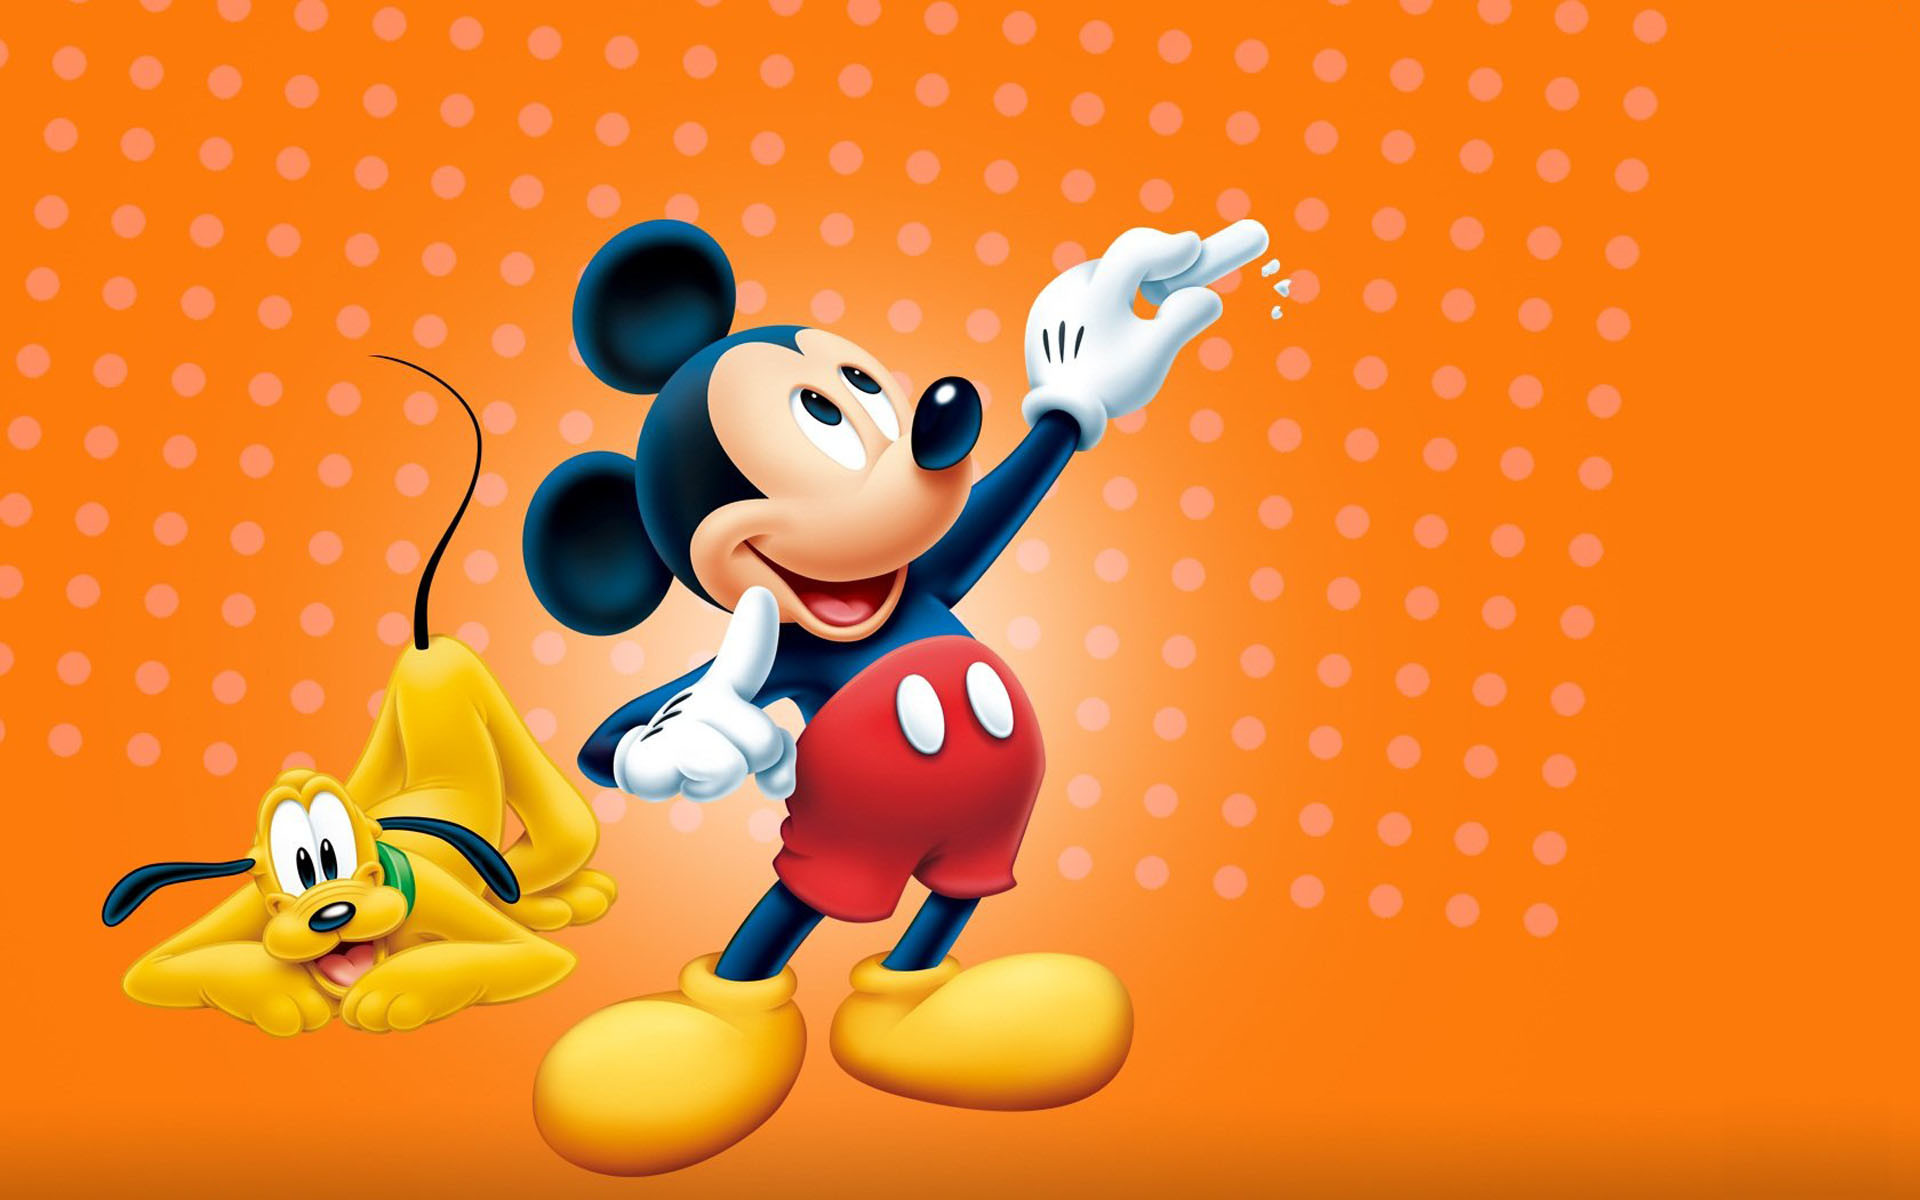 Mickey Mouse Wallpaper (7)